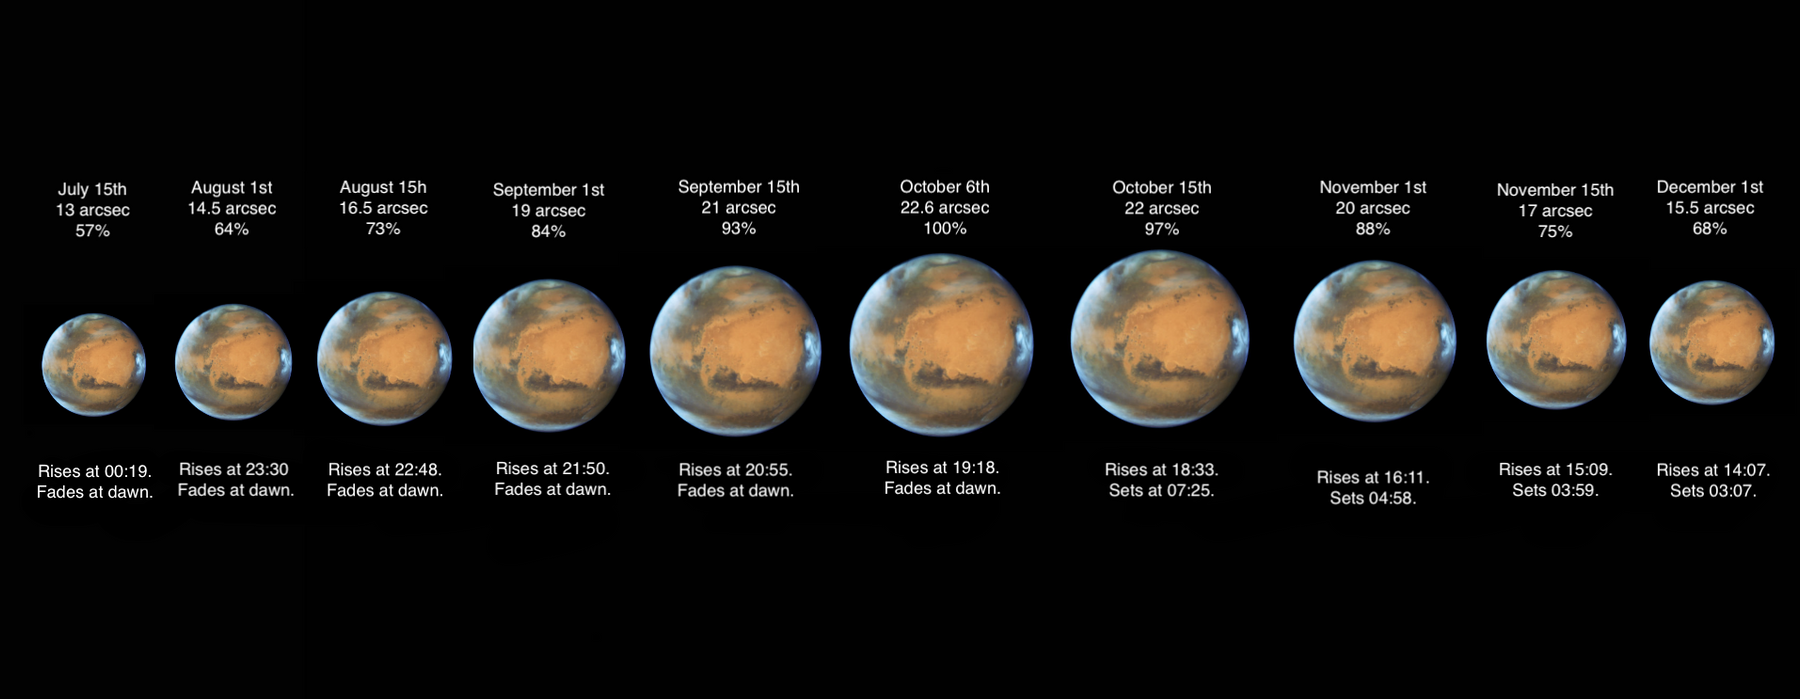 Mars Attacks - Preparing for closest approach this October